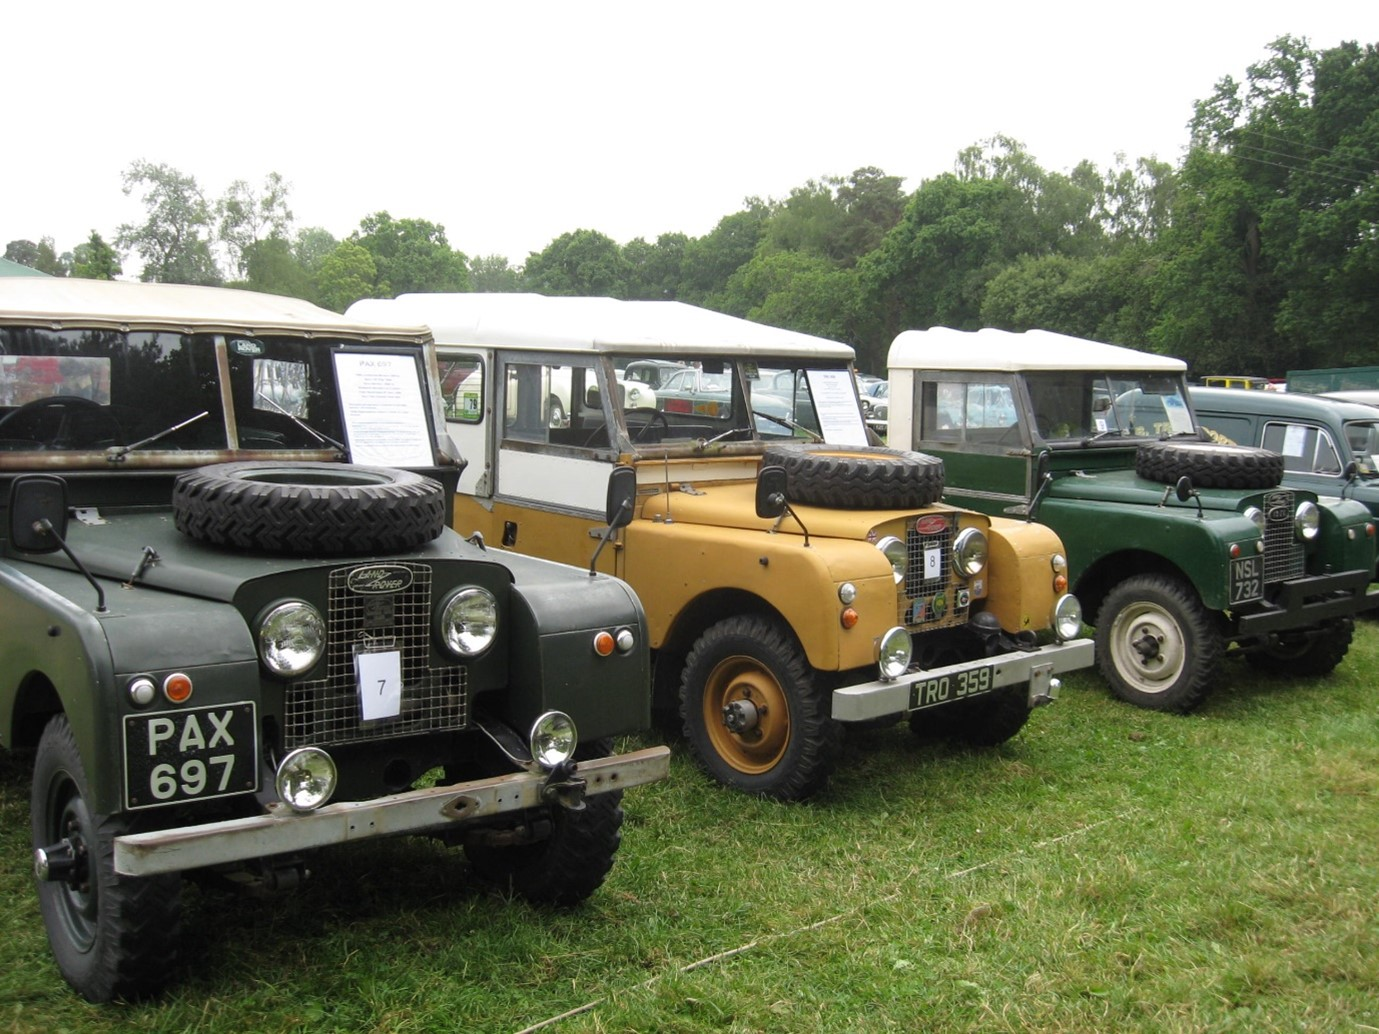 Classic Landrovers